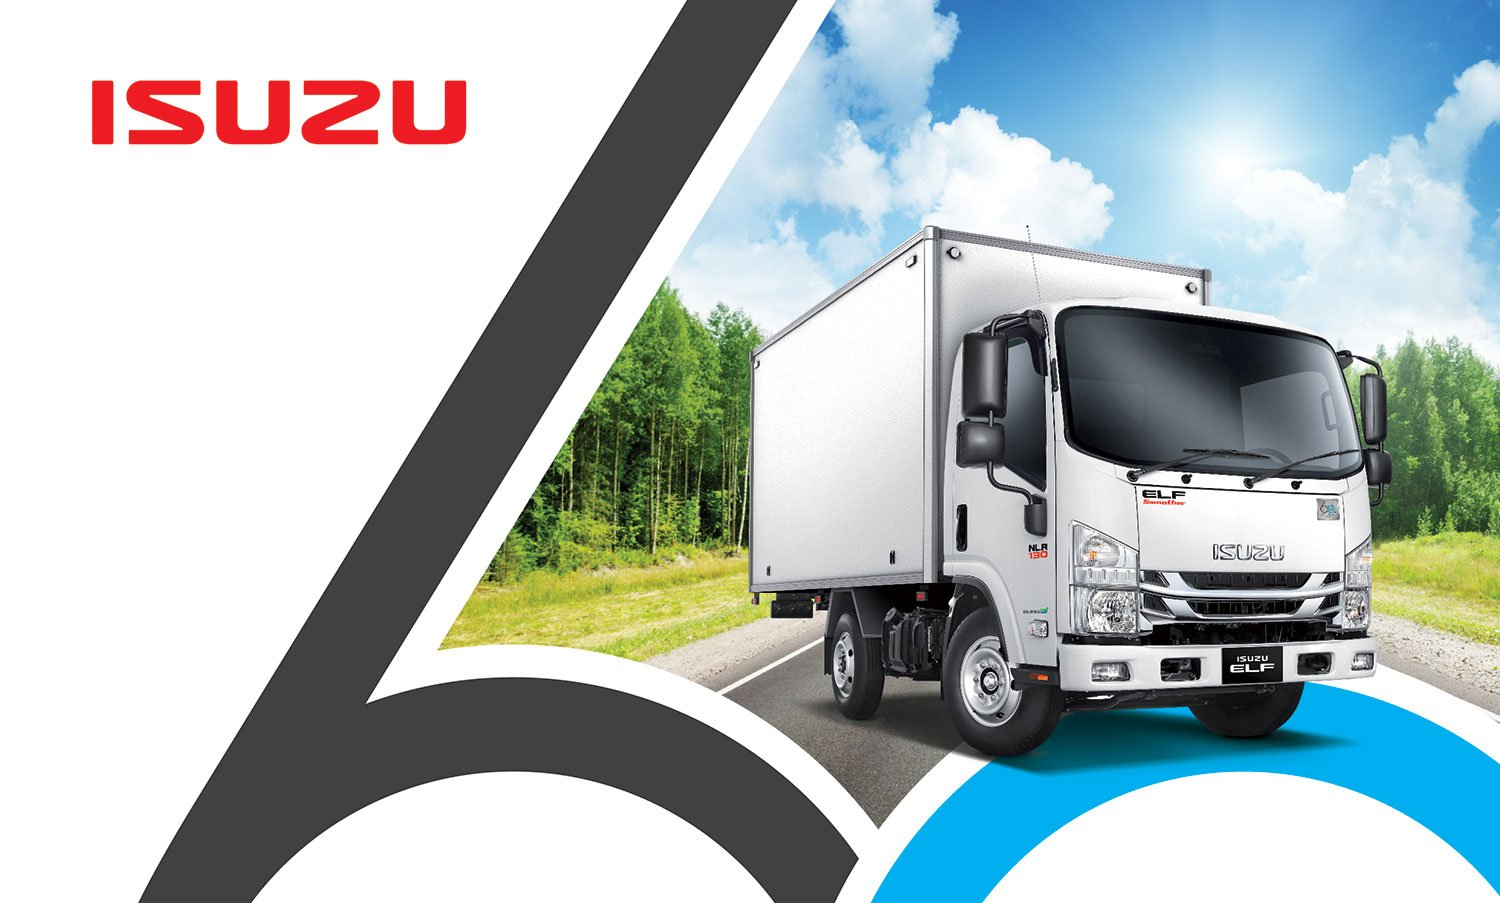 CELEBRATING THE 60TH ANNIVERSARY OF ISUZU'S TRUSTED ELF TRUCK